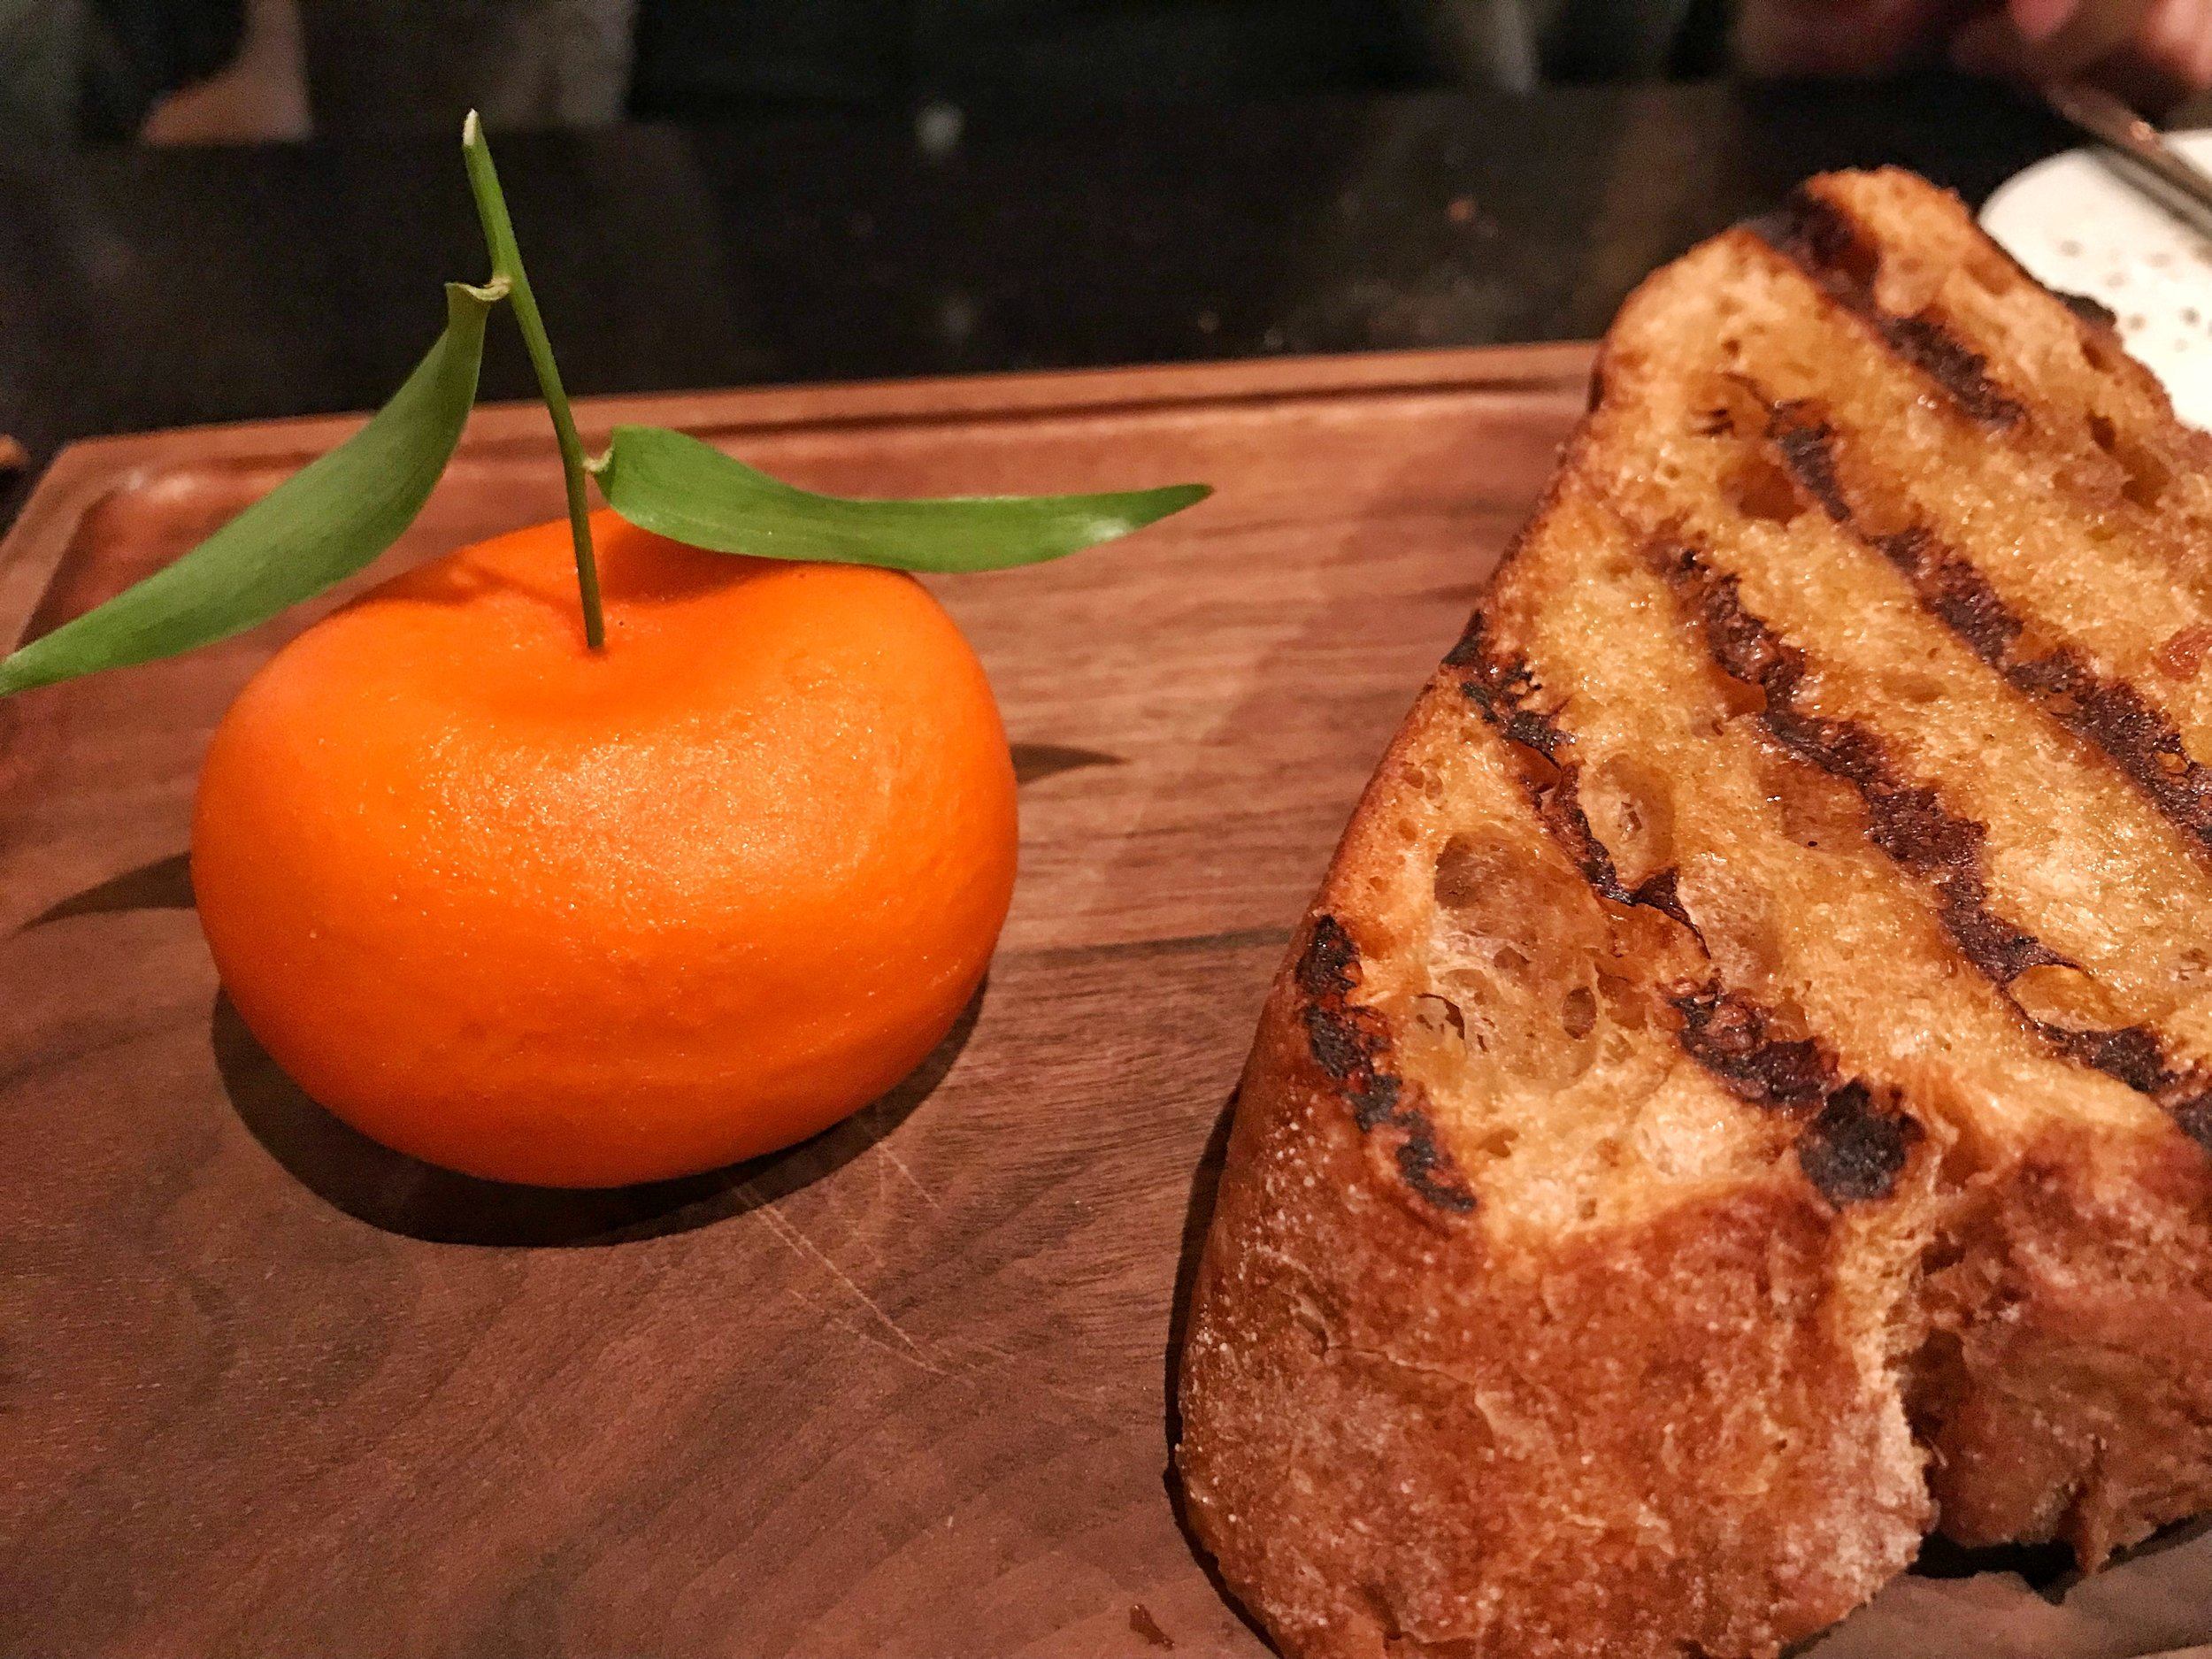 Just a mandarin and grilled bread? I don't think so